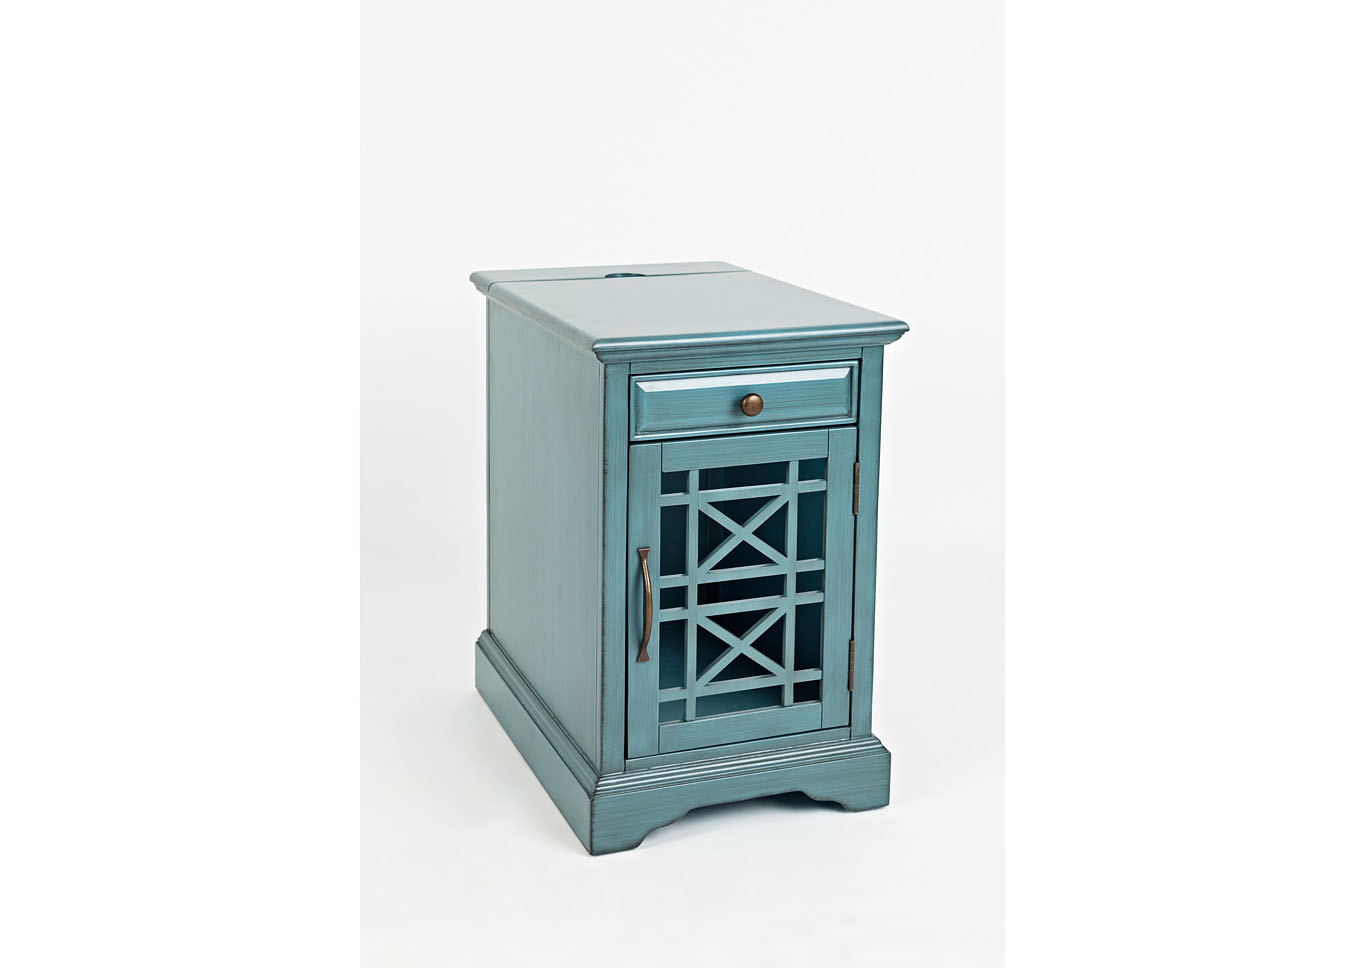 Craftsman Power Chairside Table - Antique Blue,Instore